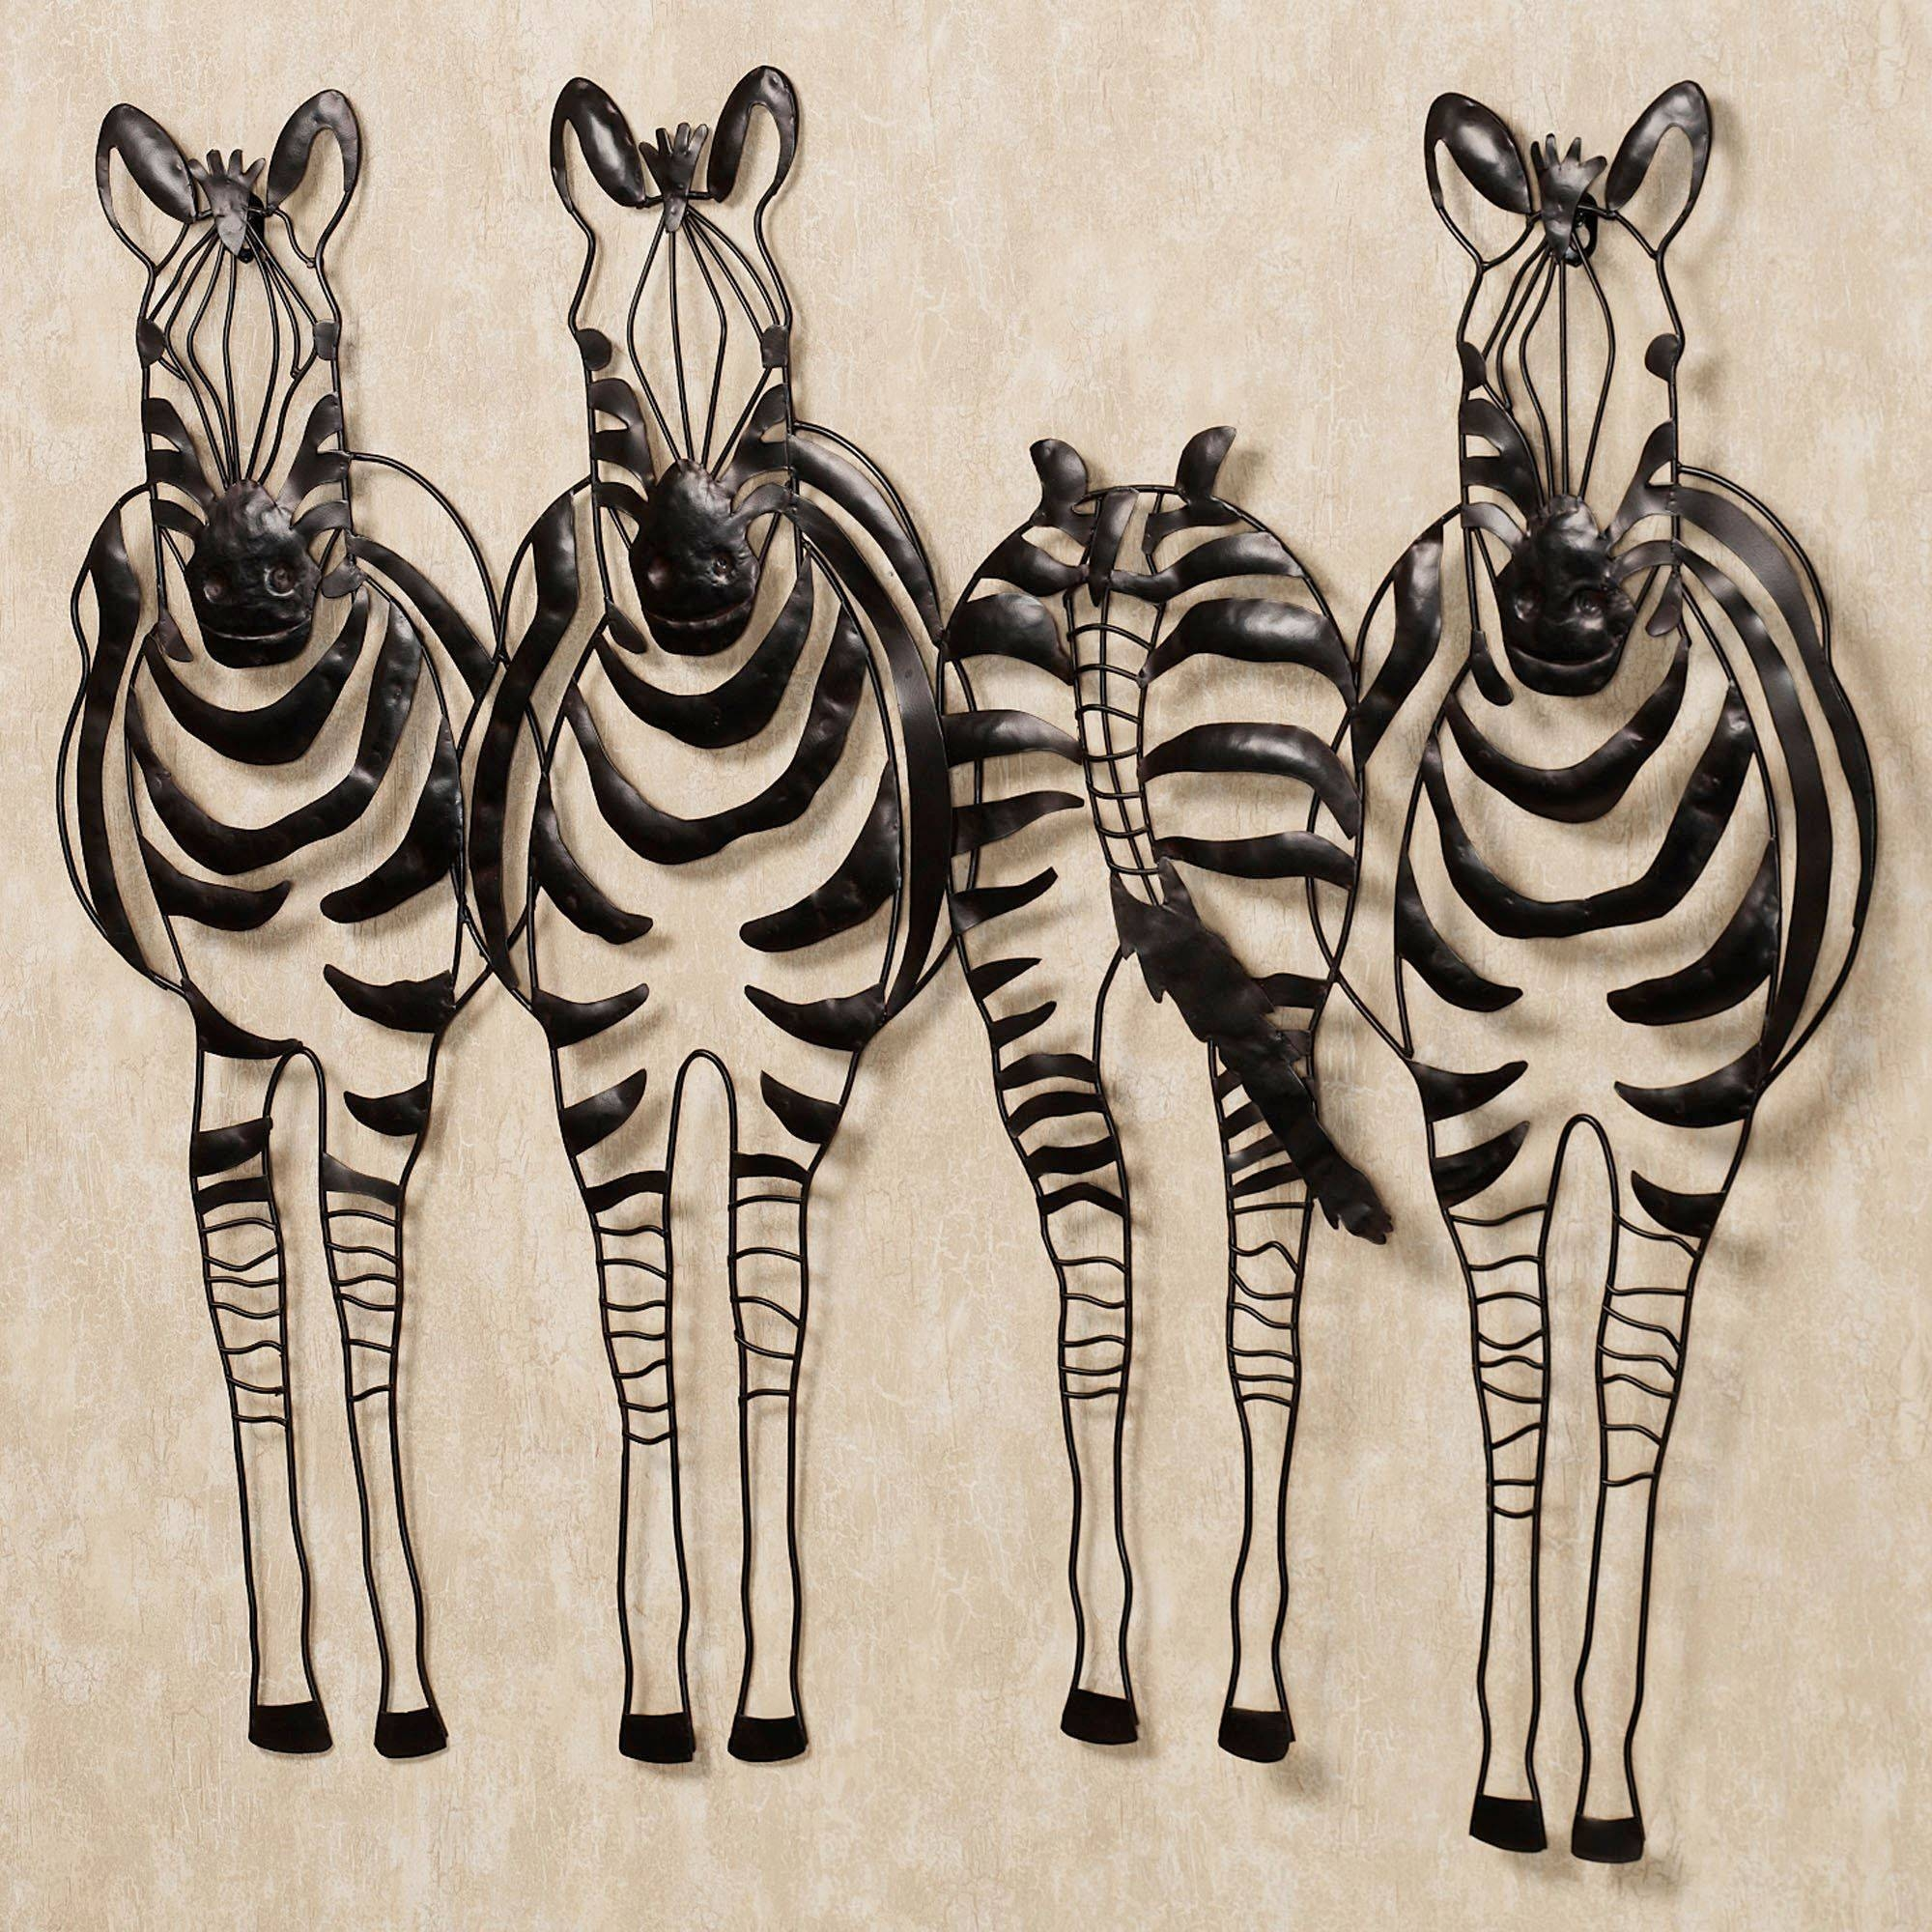 Safari African Art | Touch Of Class Intended For Recent African Animal Wall Art (View 17 of 20)